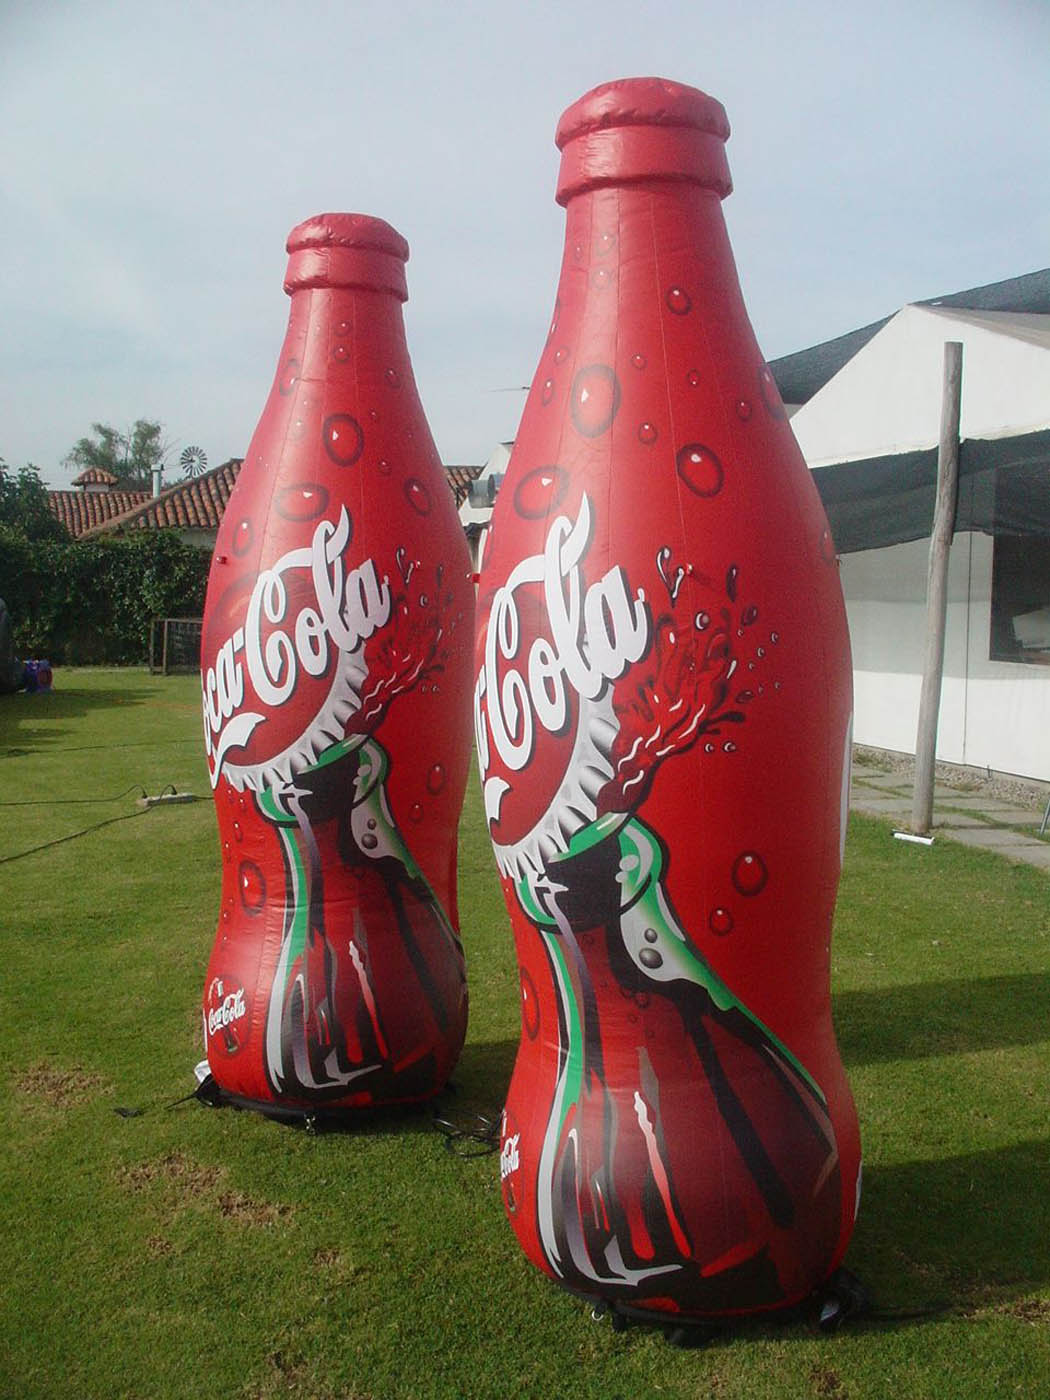 Botella Inflable impresa coca cola In Your Face Media Limited